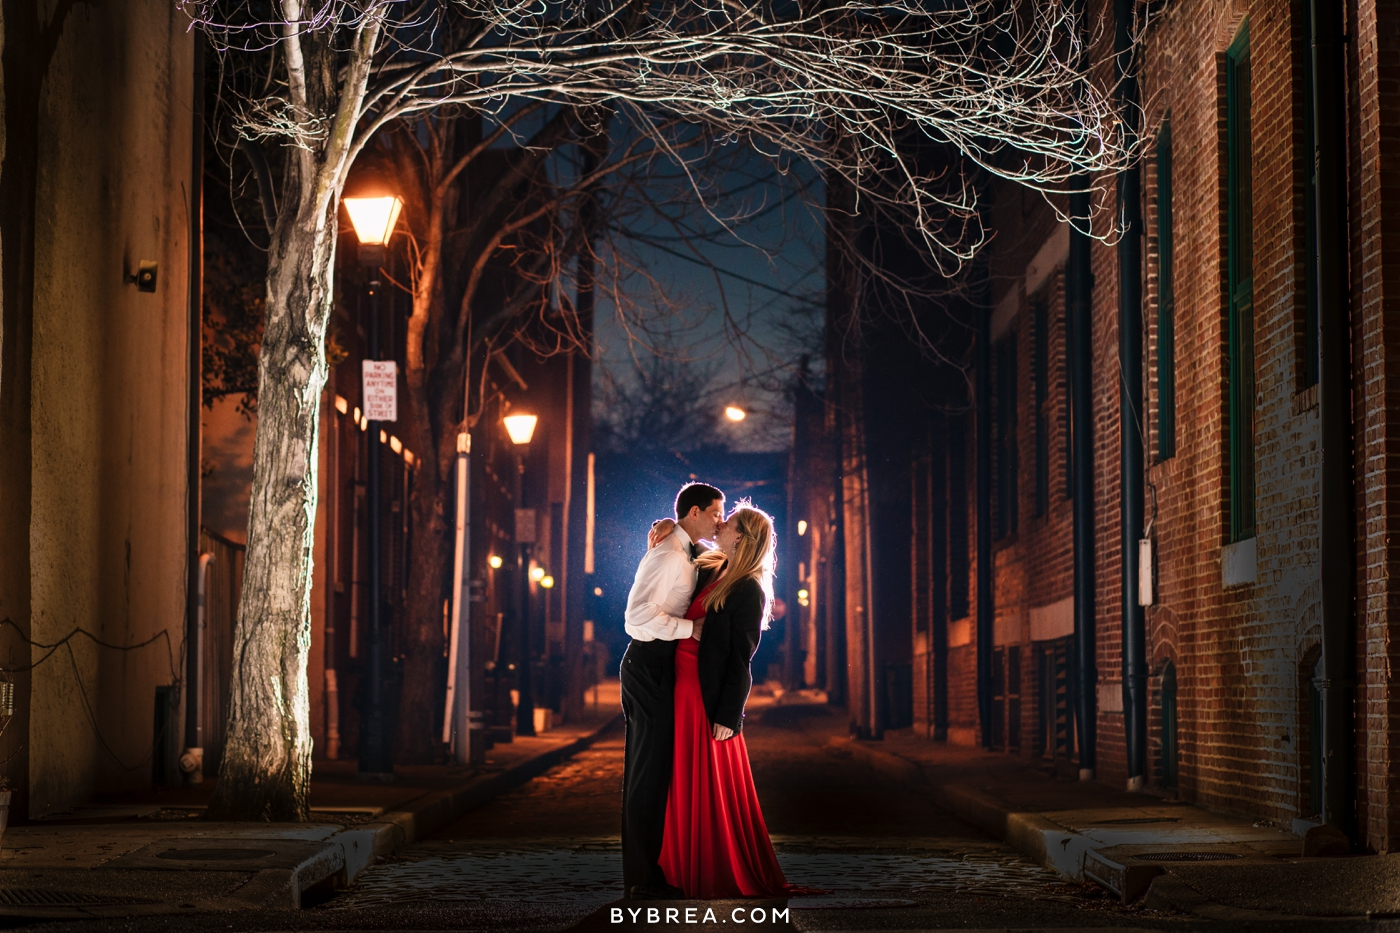 Christmas themed engagement session photo fancy couple kissing at night portrait